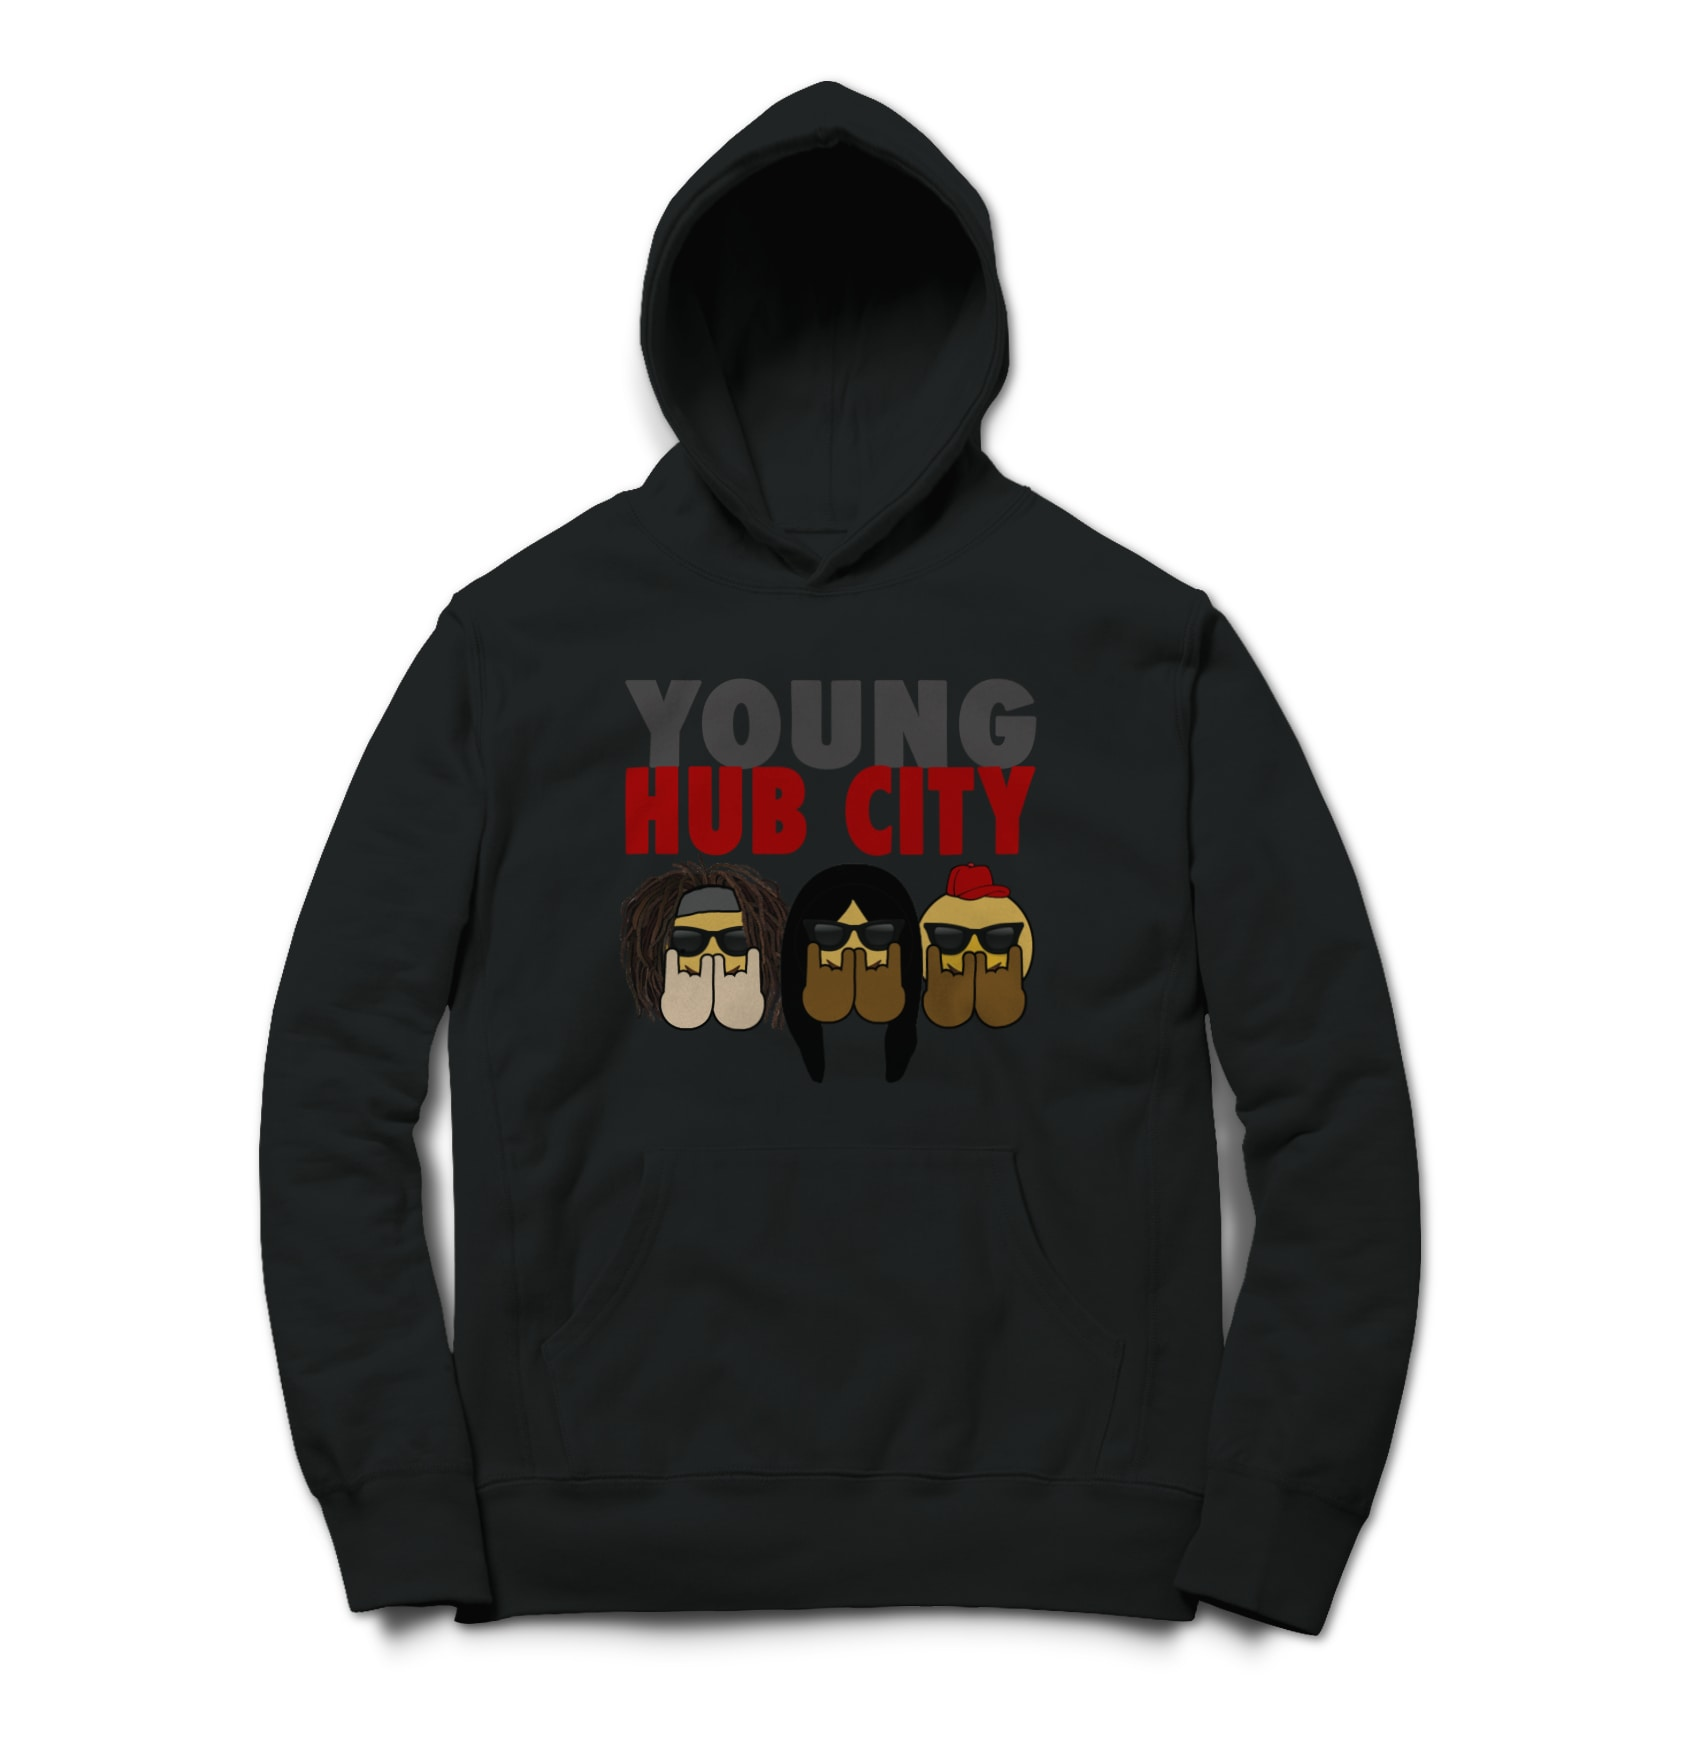 Young hub city yhc emoji 1496691711